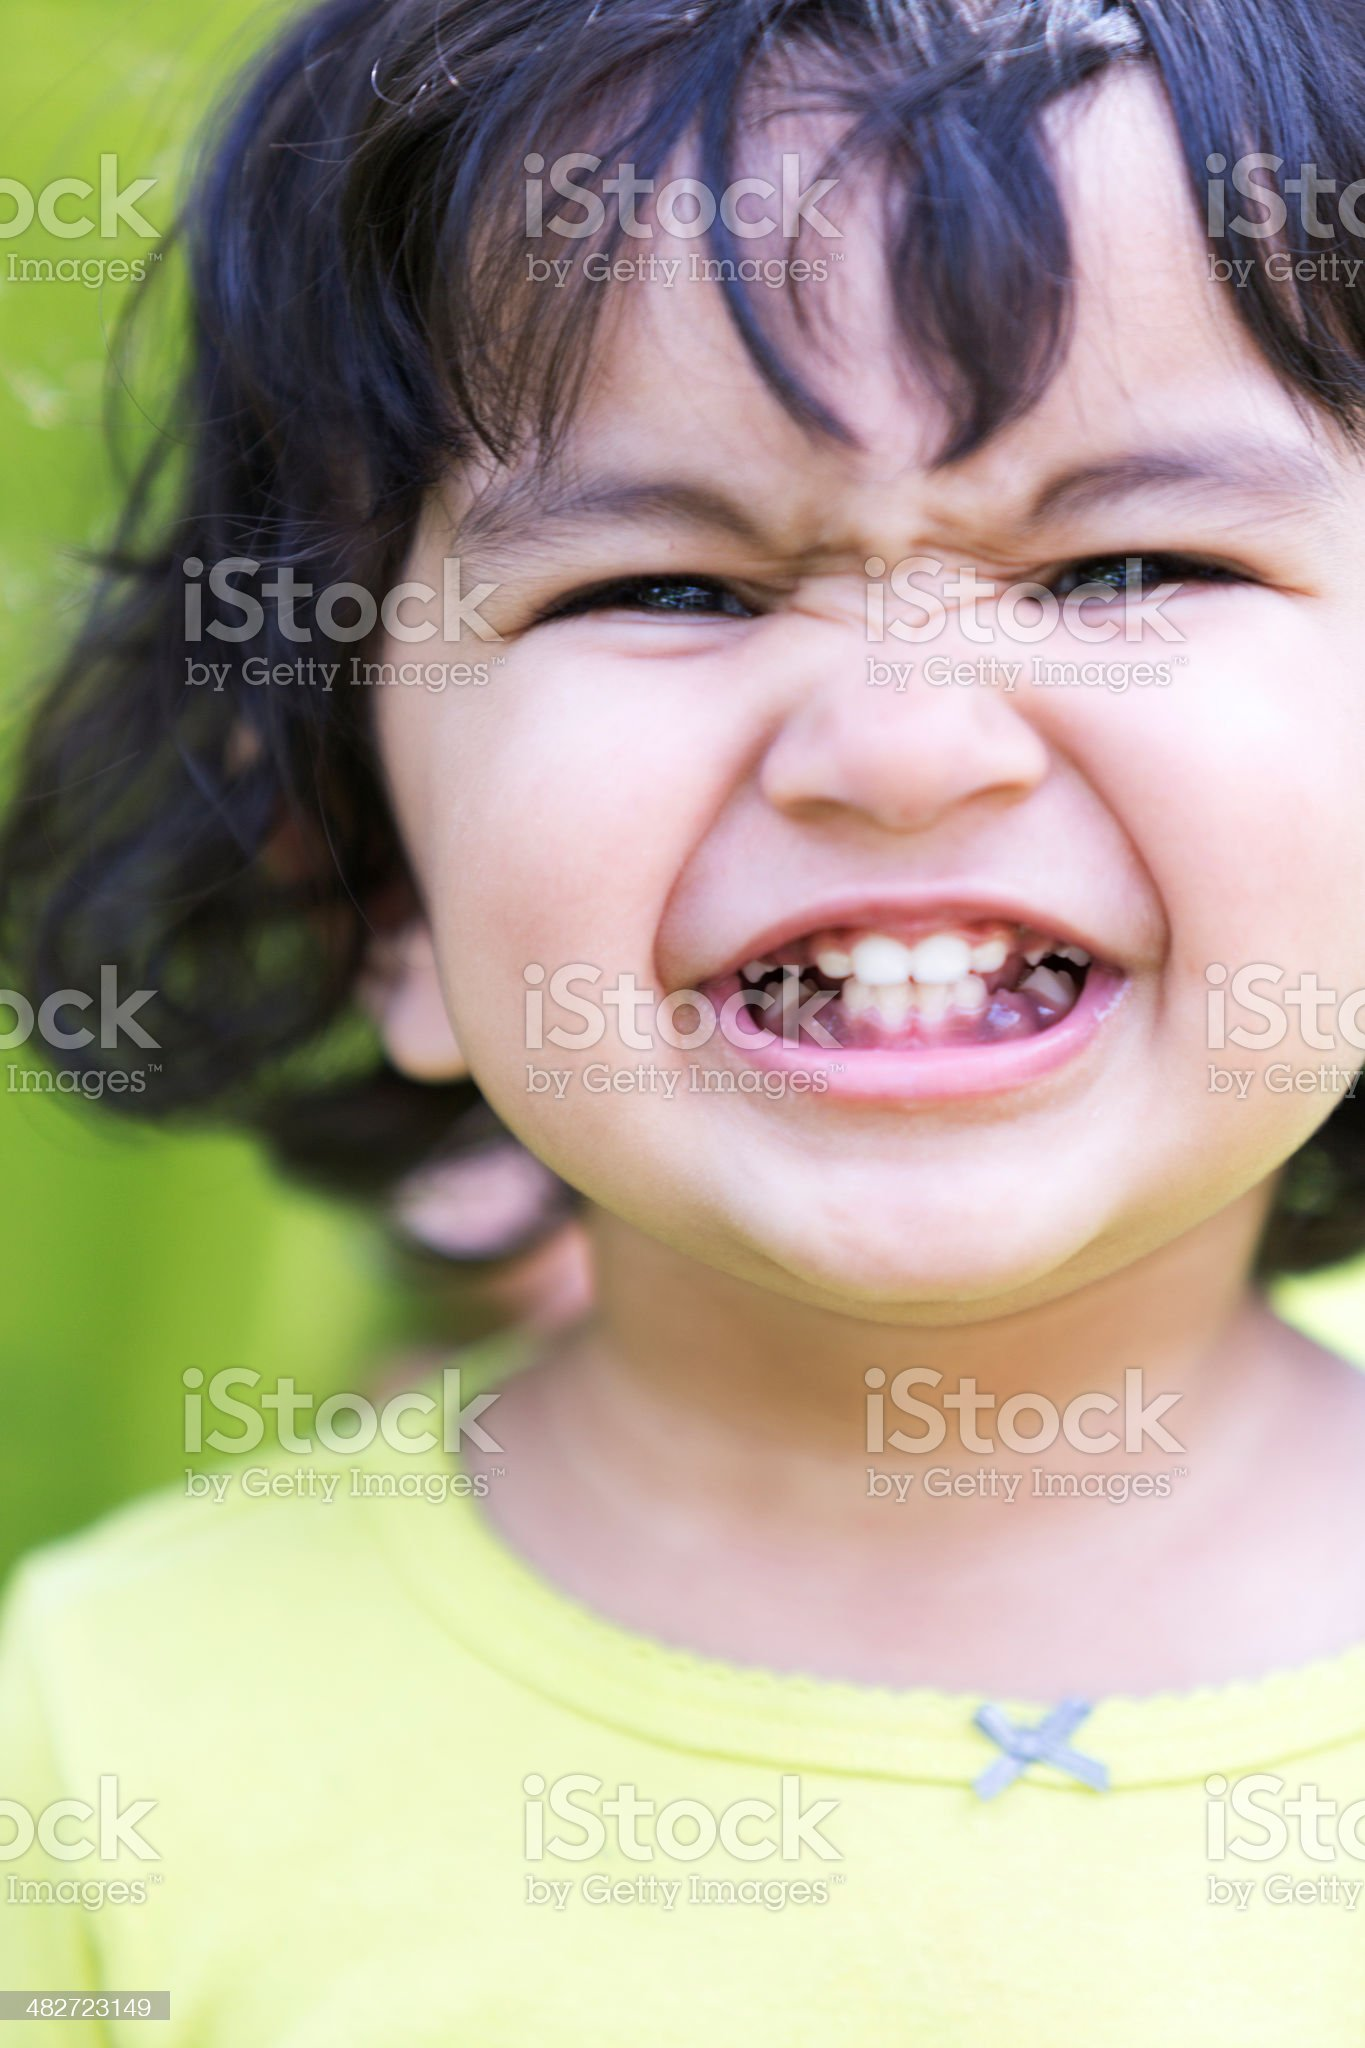 Cheeky smile from a cute baby girl royalty-free stock photo